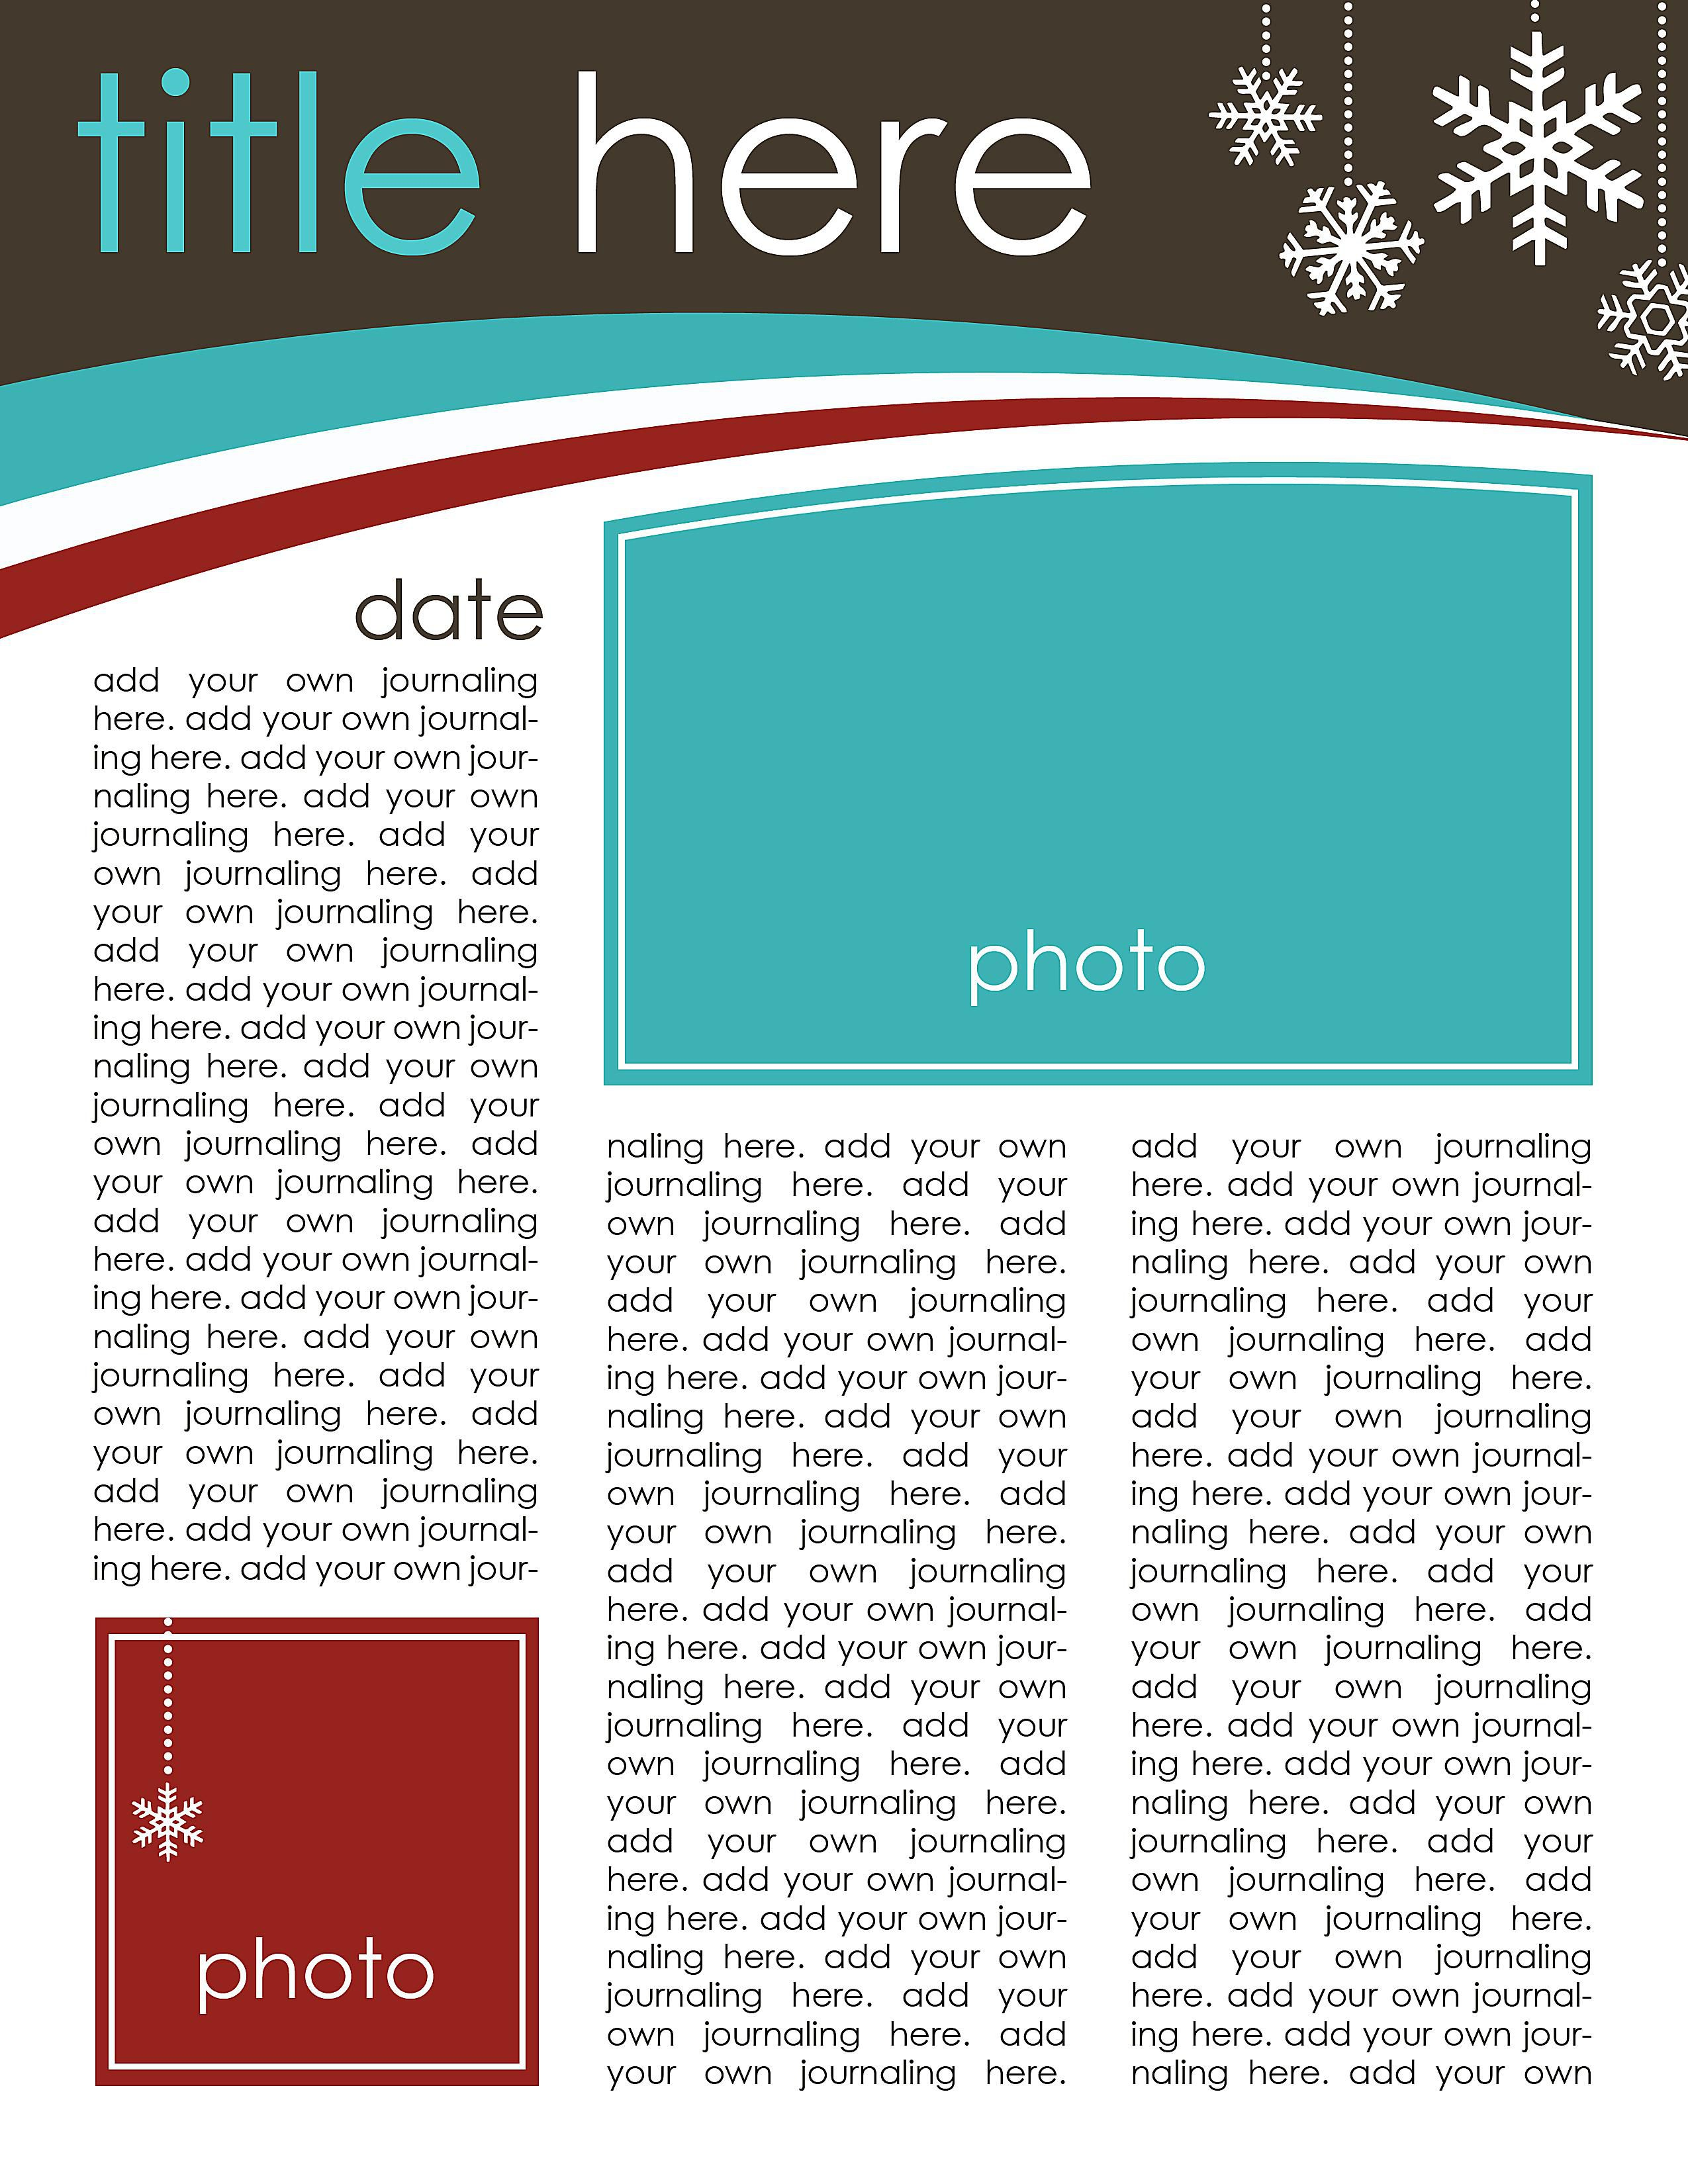 49 free christmas letter templates that youll love spiritdancerdesigns Image collections